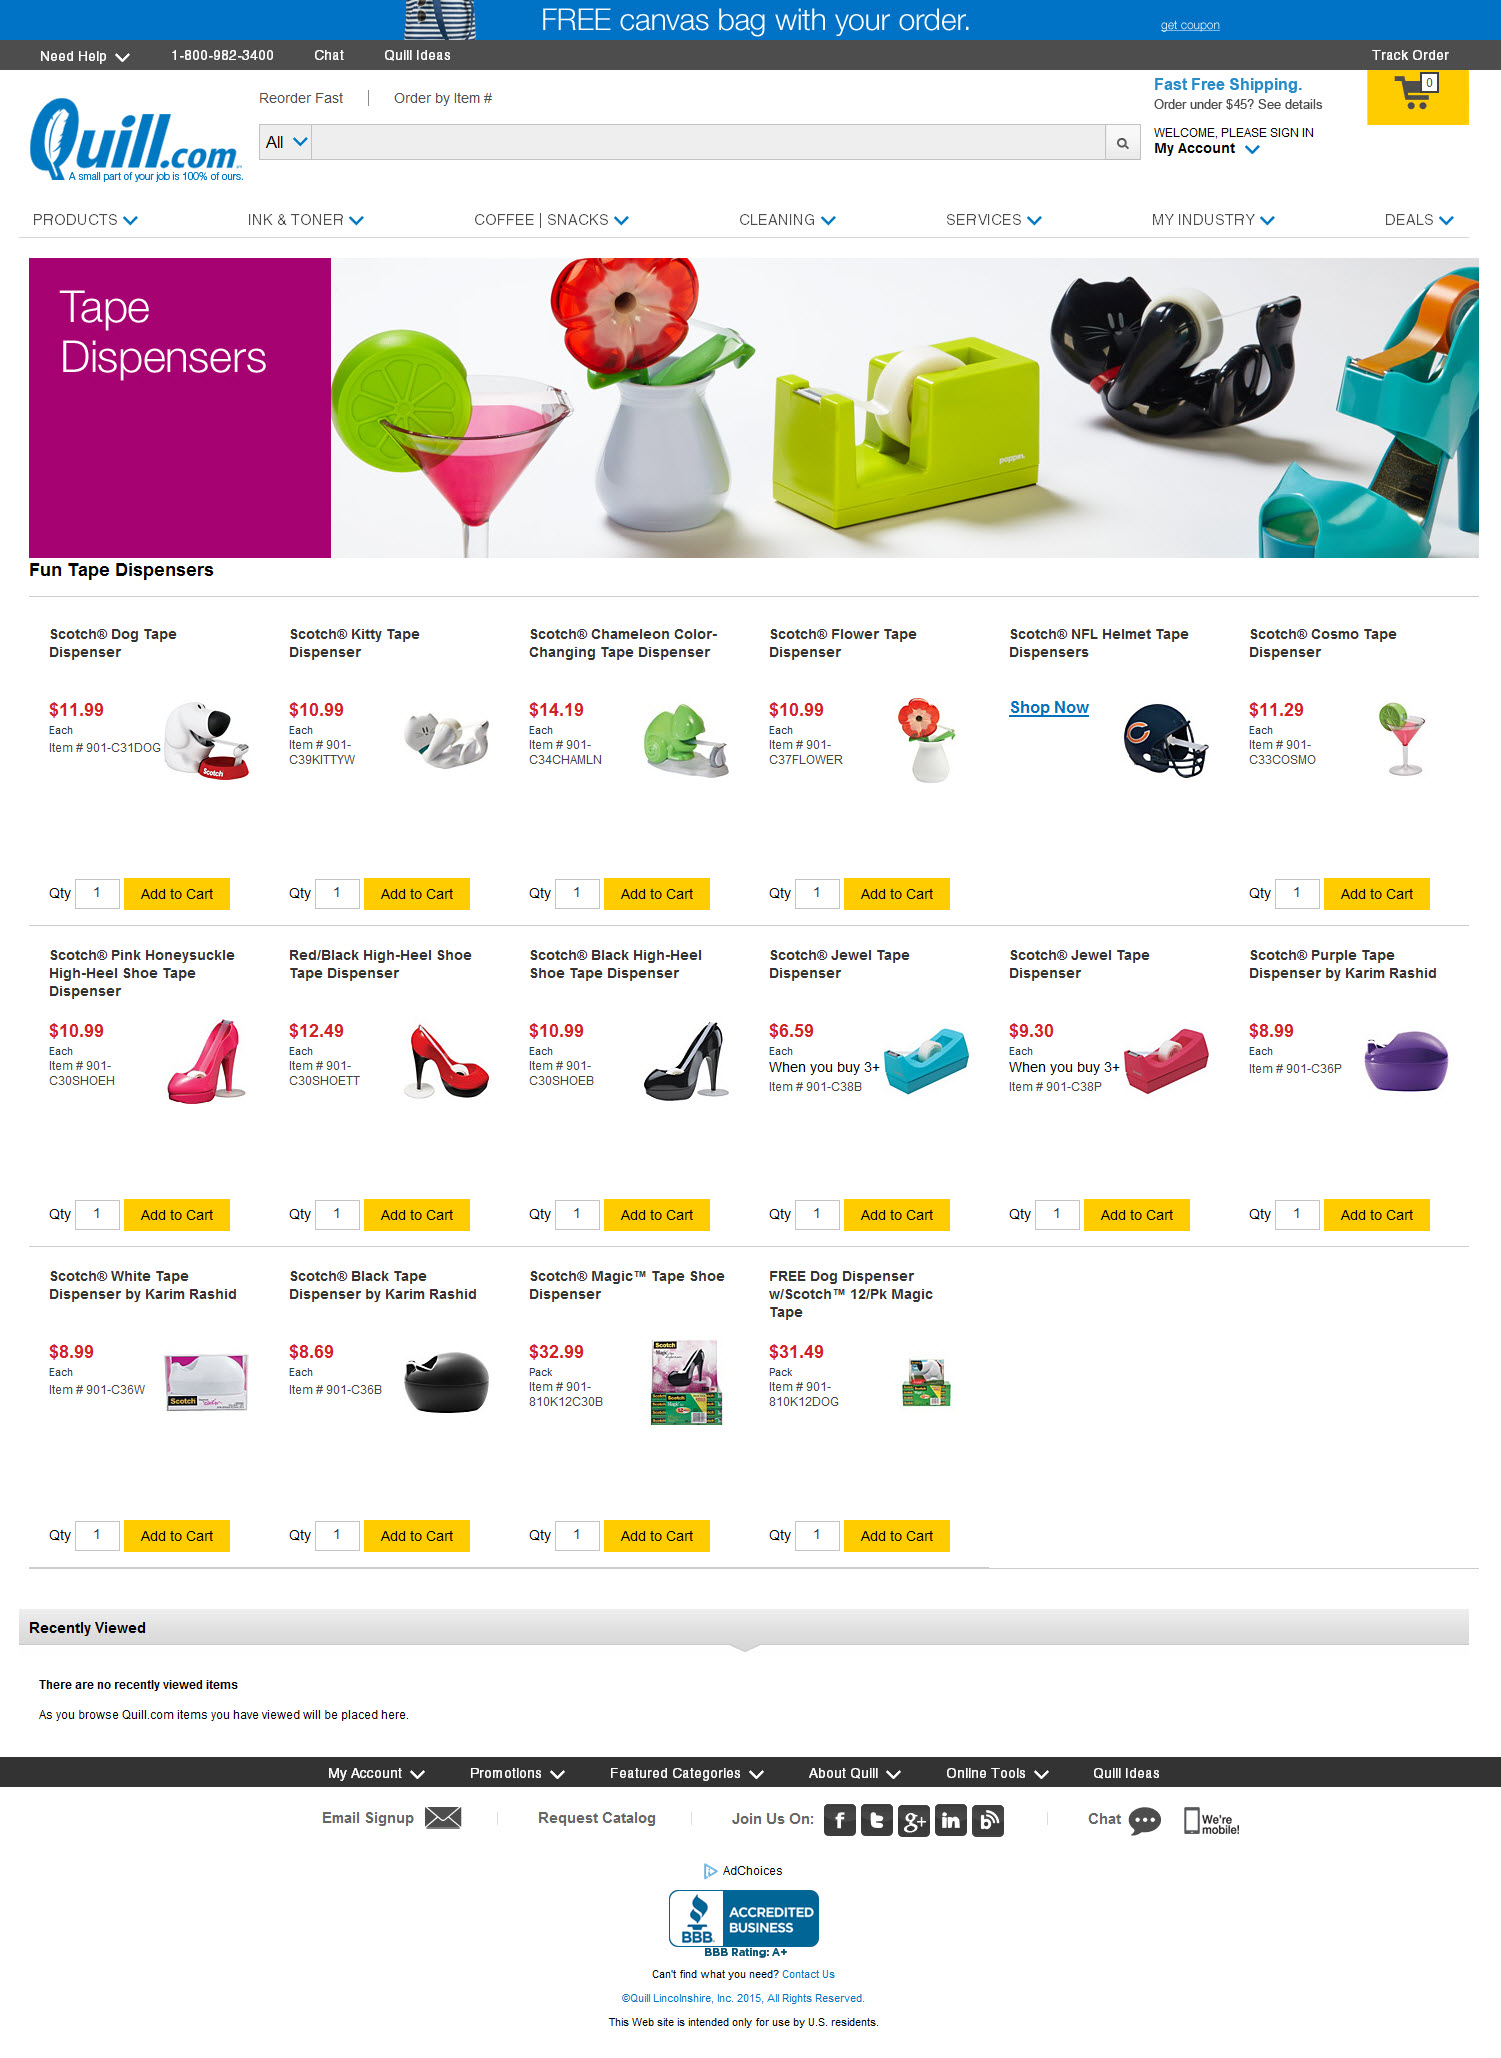 Tape Dispenser product page